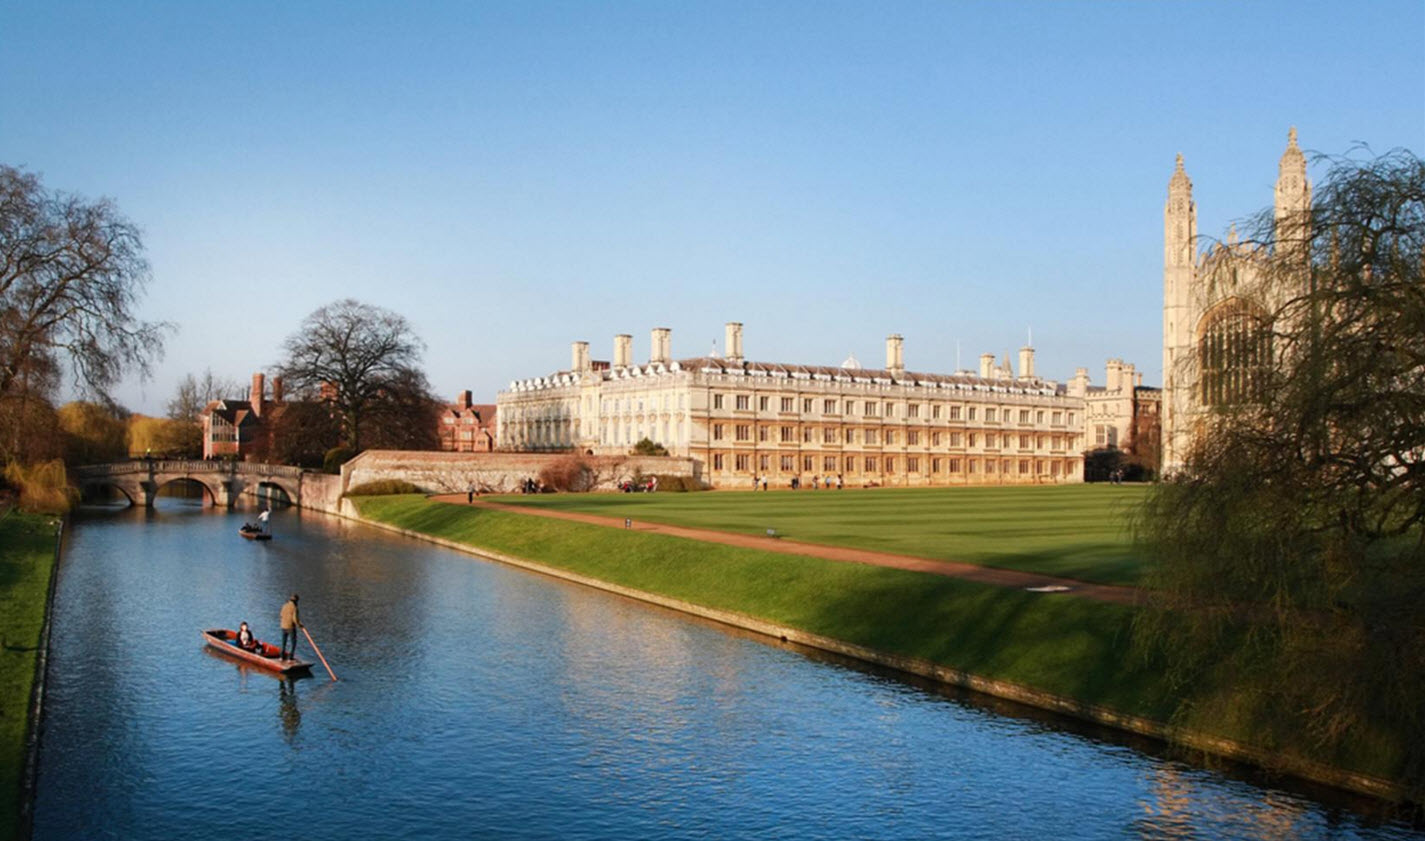 Cambridge Punting Tours